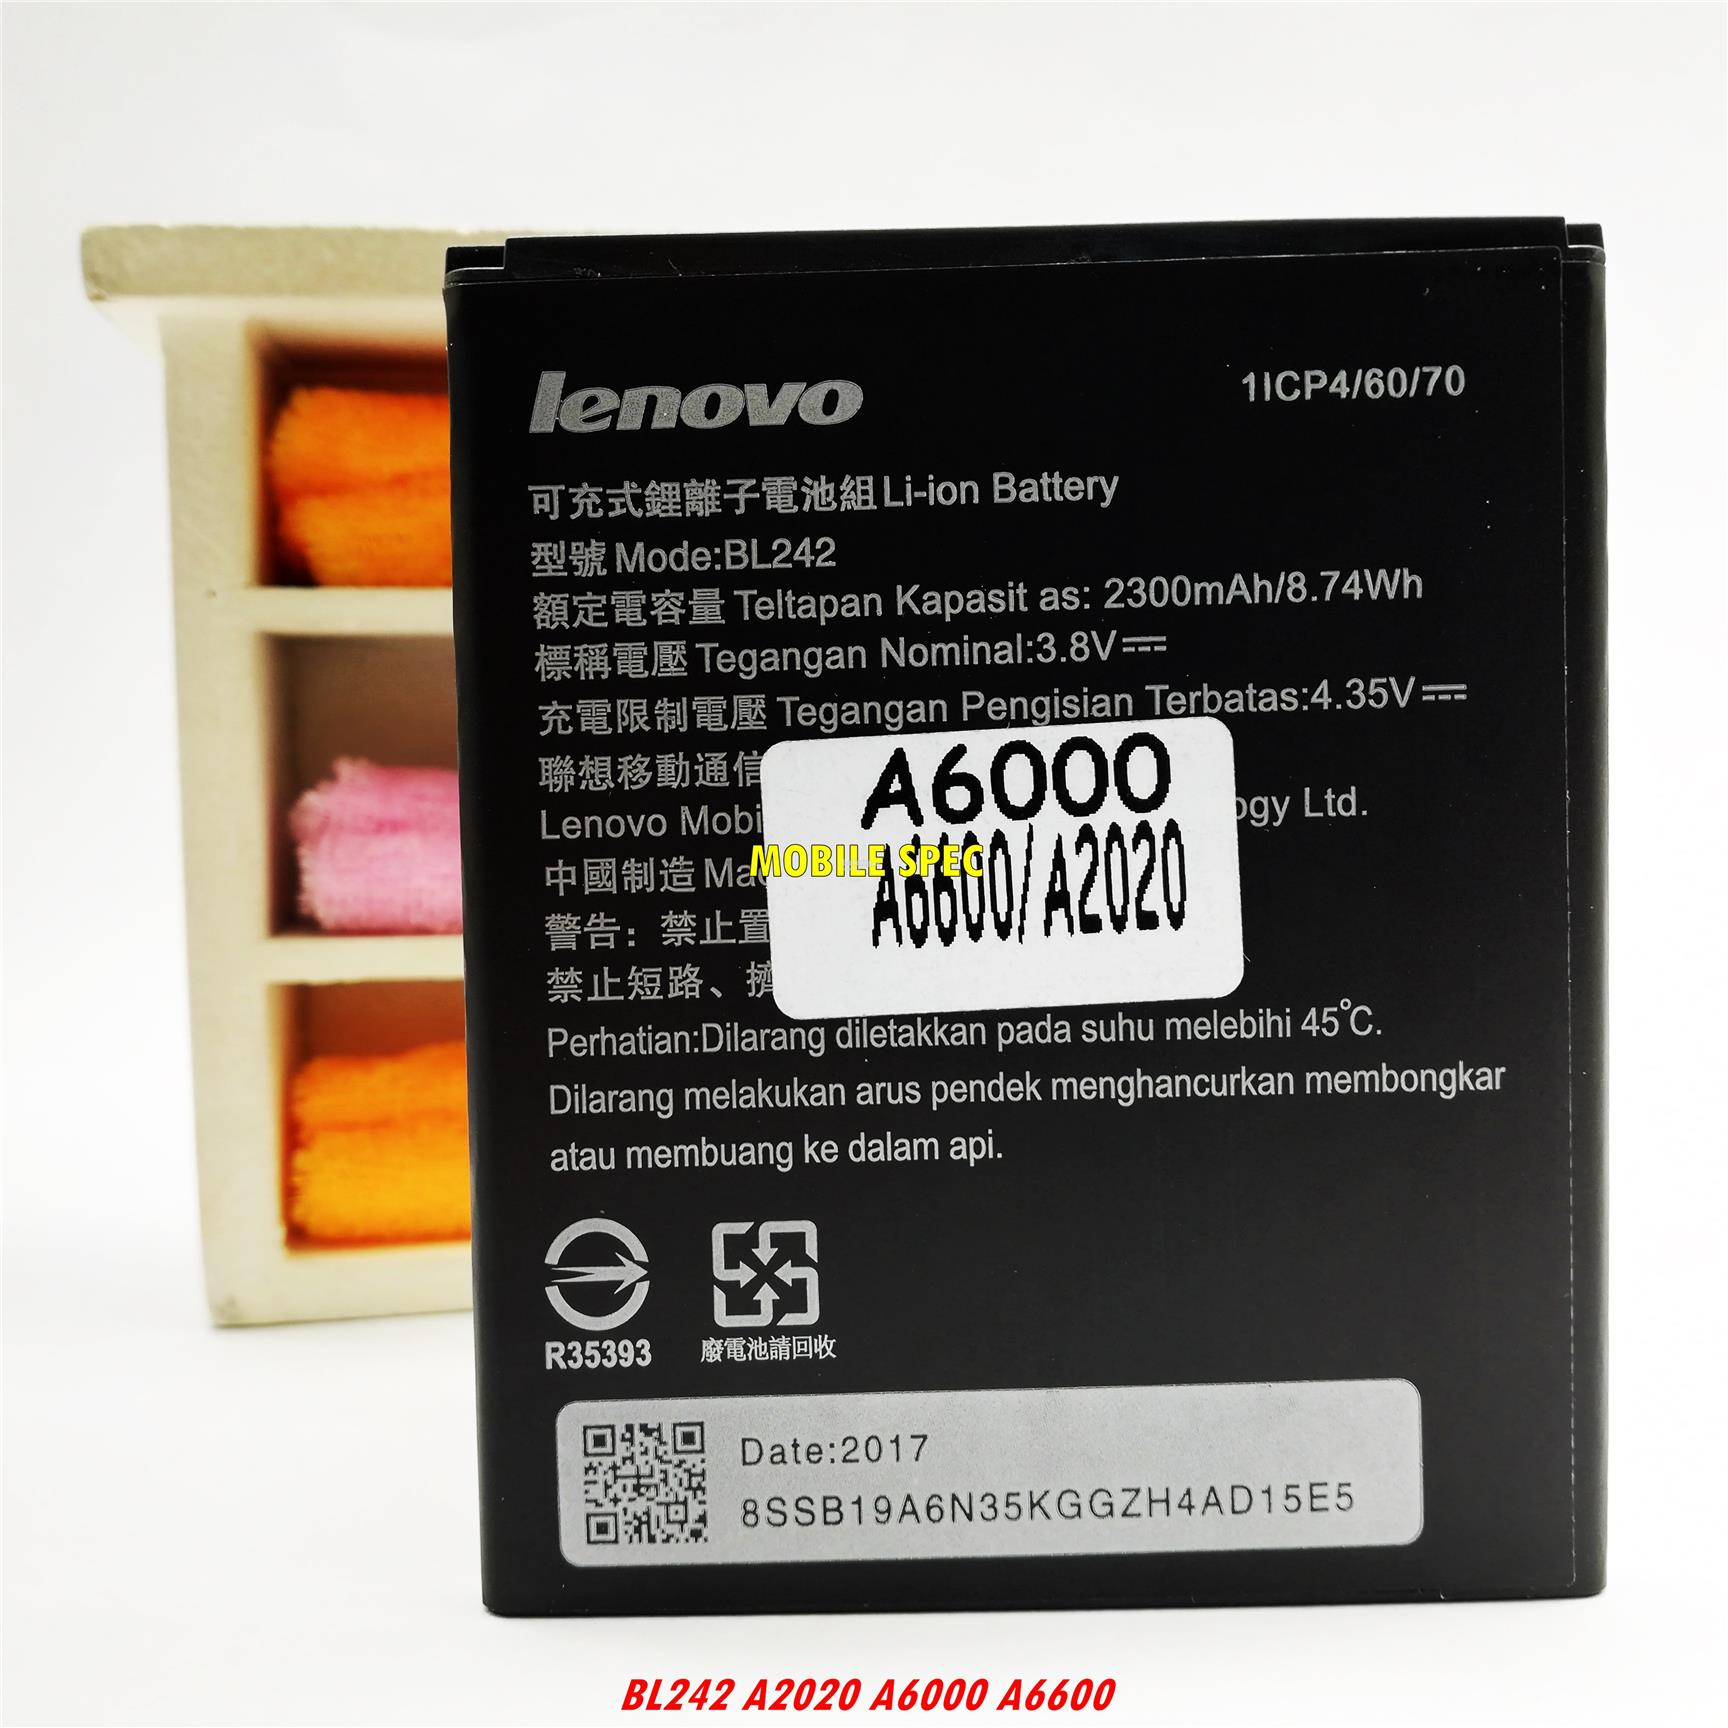 Lenovo BL242 A2020 A6000 A6600 Replacement Battery 2300mAh